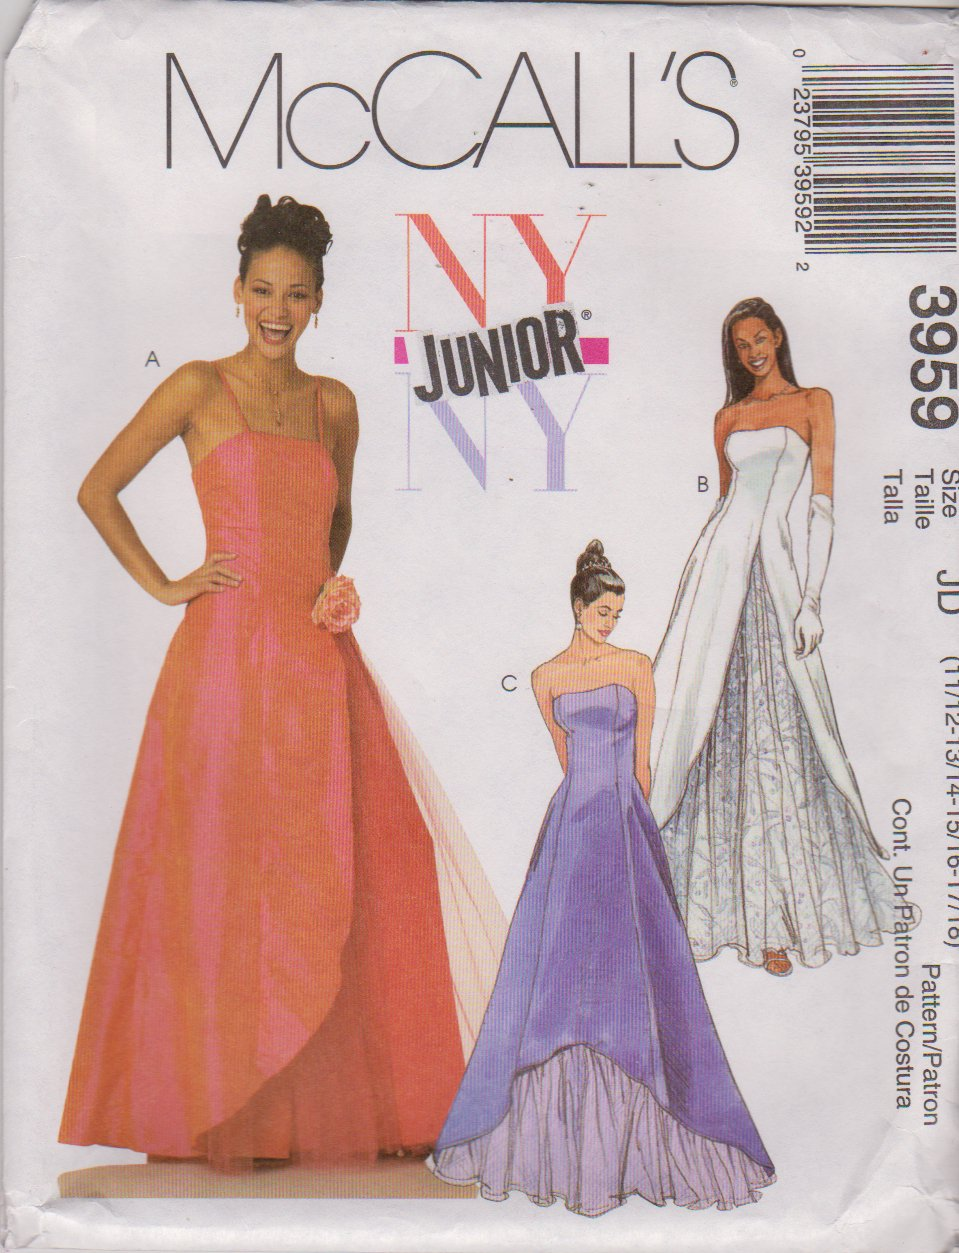 McCall's Sewing Pattern 3959 Junior Size 11/12-17/18 Formal Evening Prom Quinceanera Dress